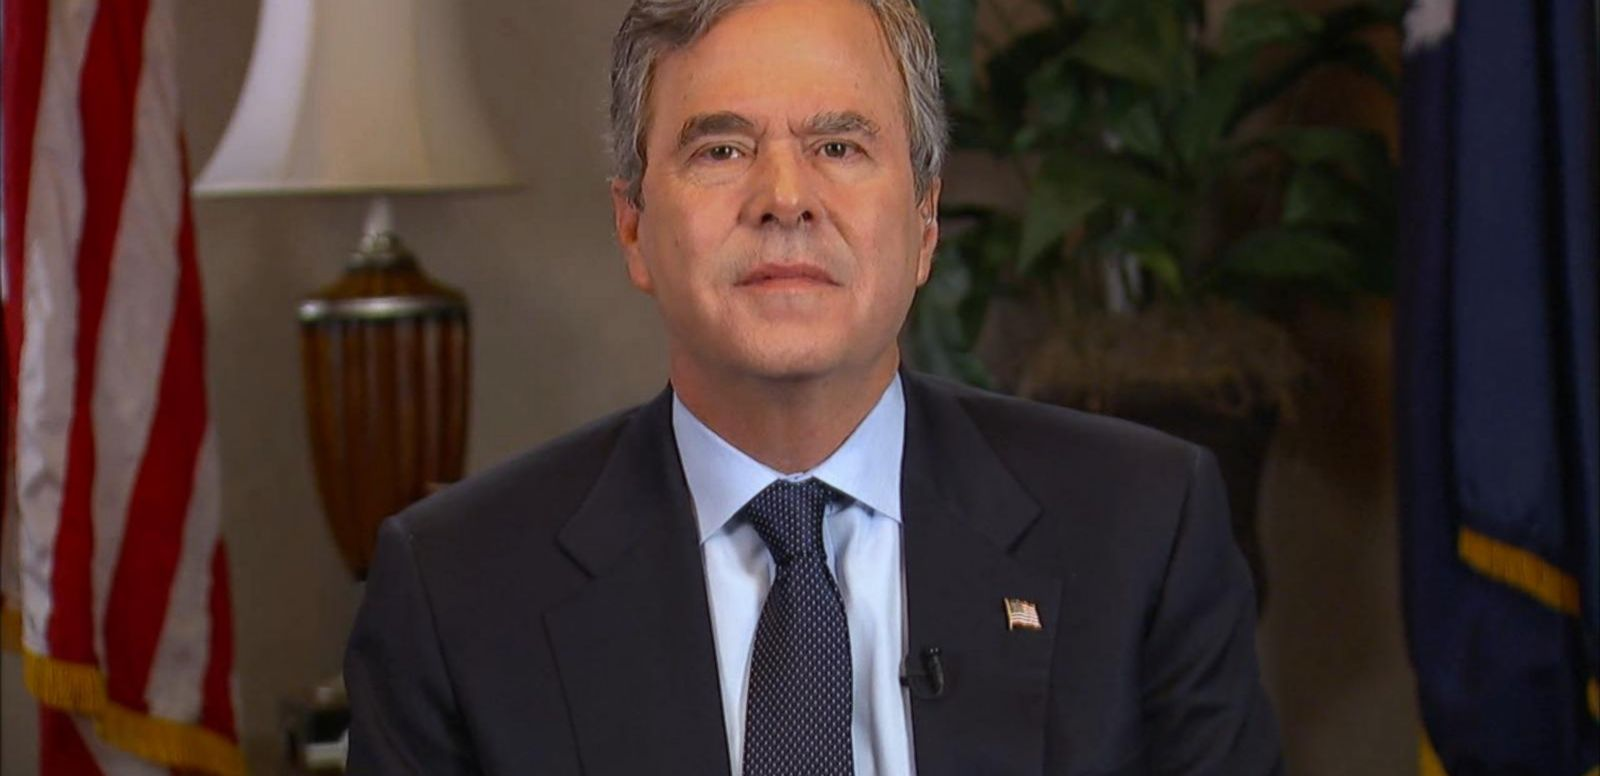 VIDEO: Jeb Bush Talks Donald Trump, Upcoming GOP Debate